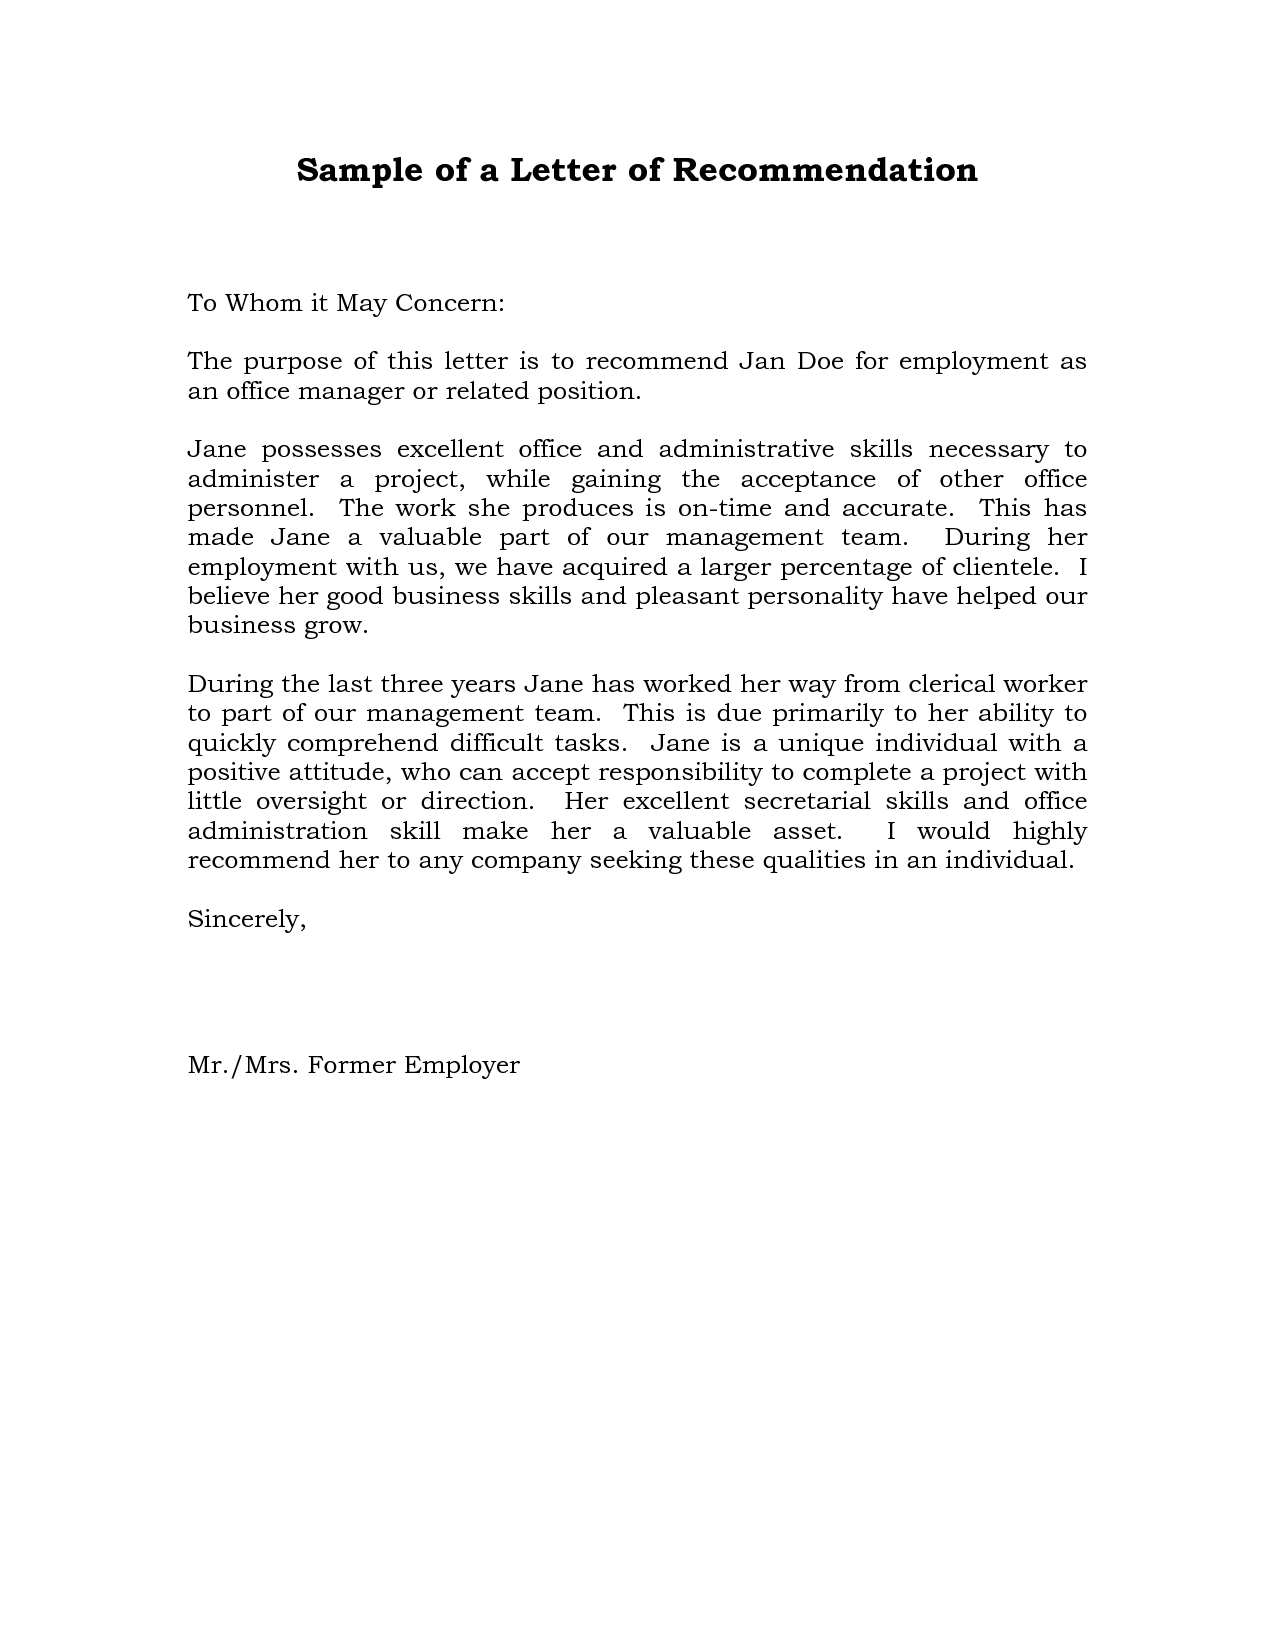 Example Recommendation Letter For Employee Pdf Reference Letter Of Recommendation Sample Sample Manager